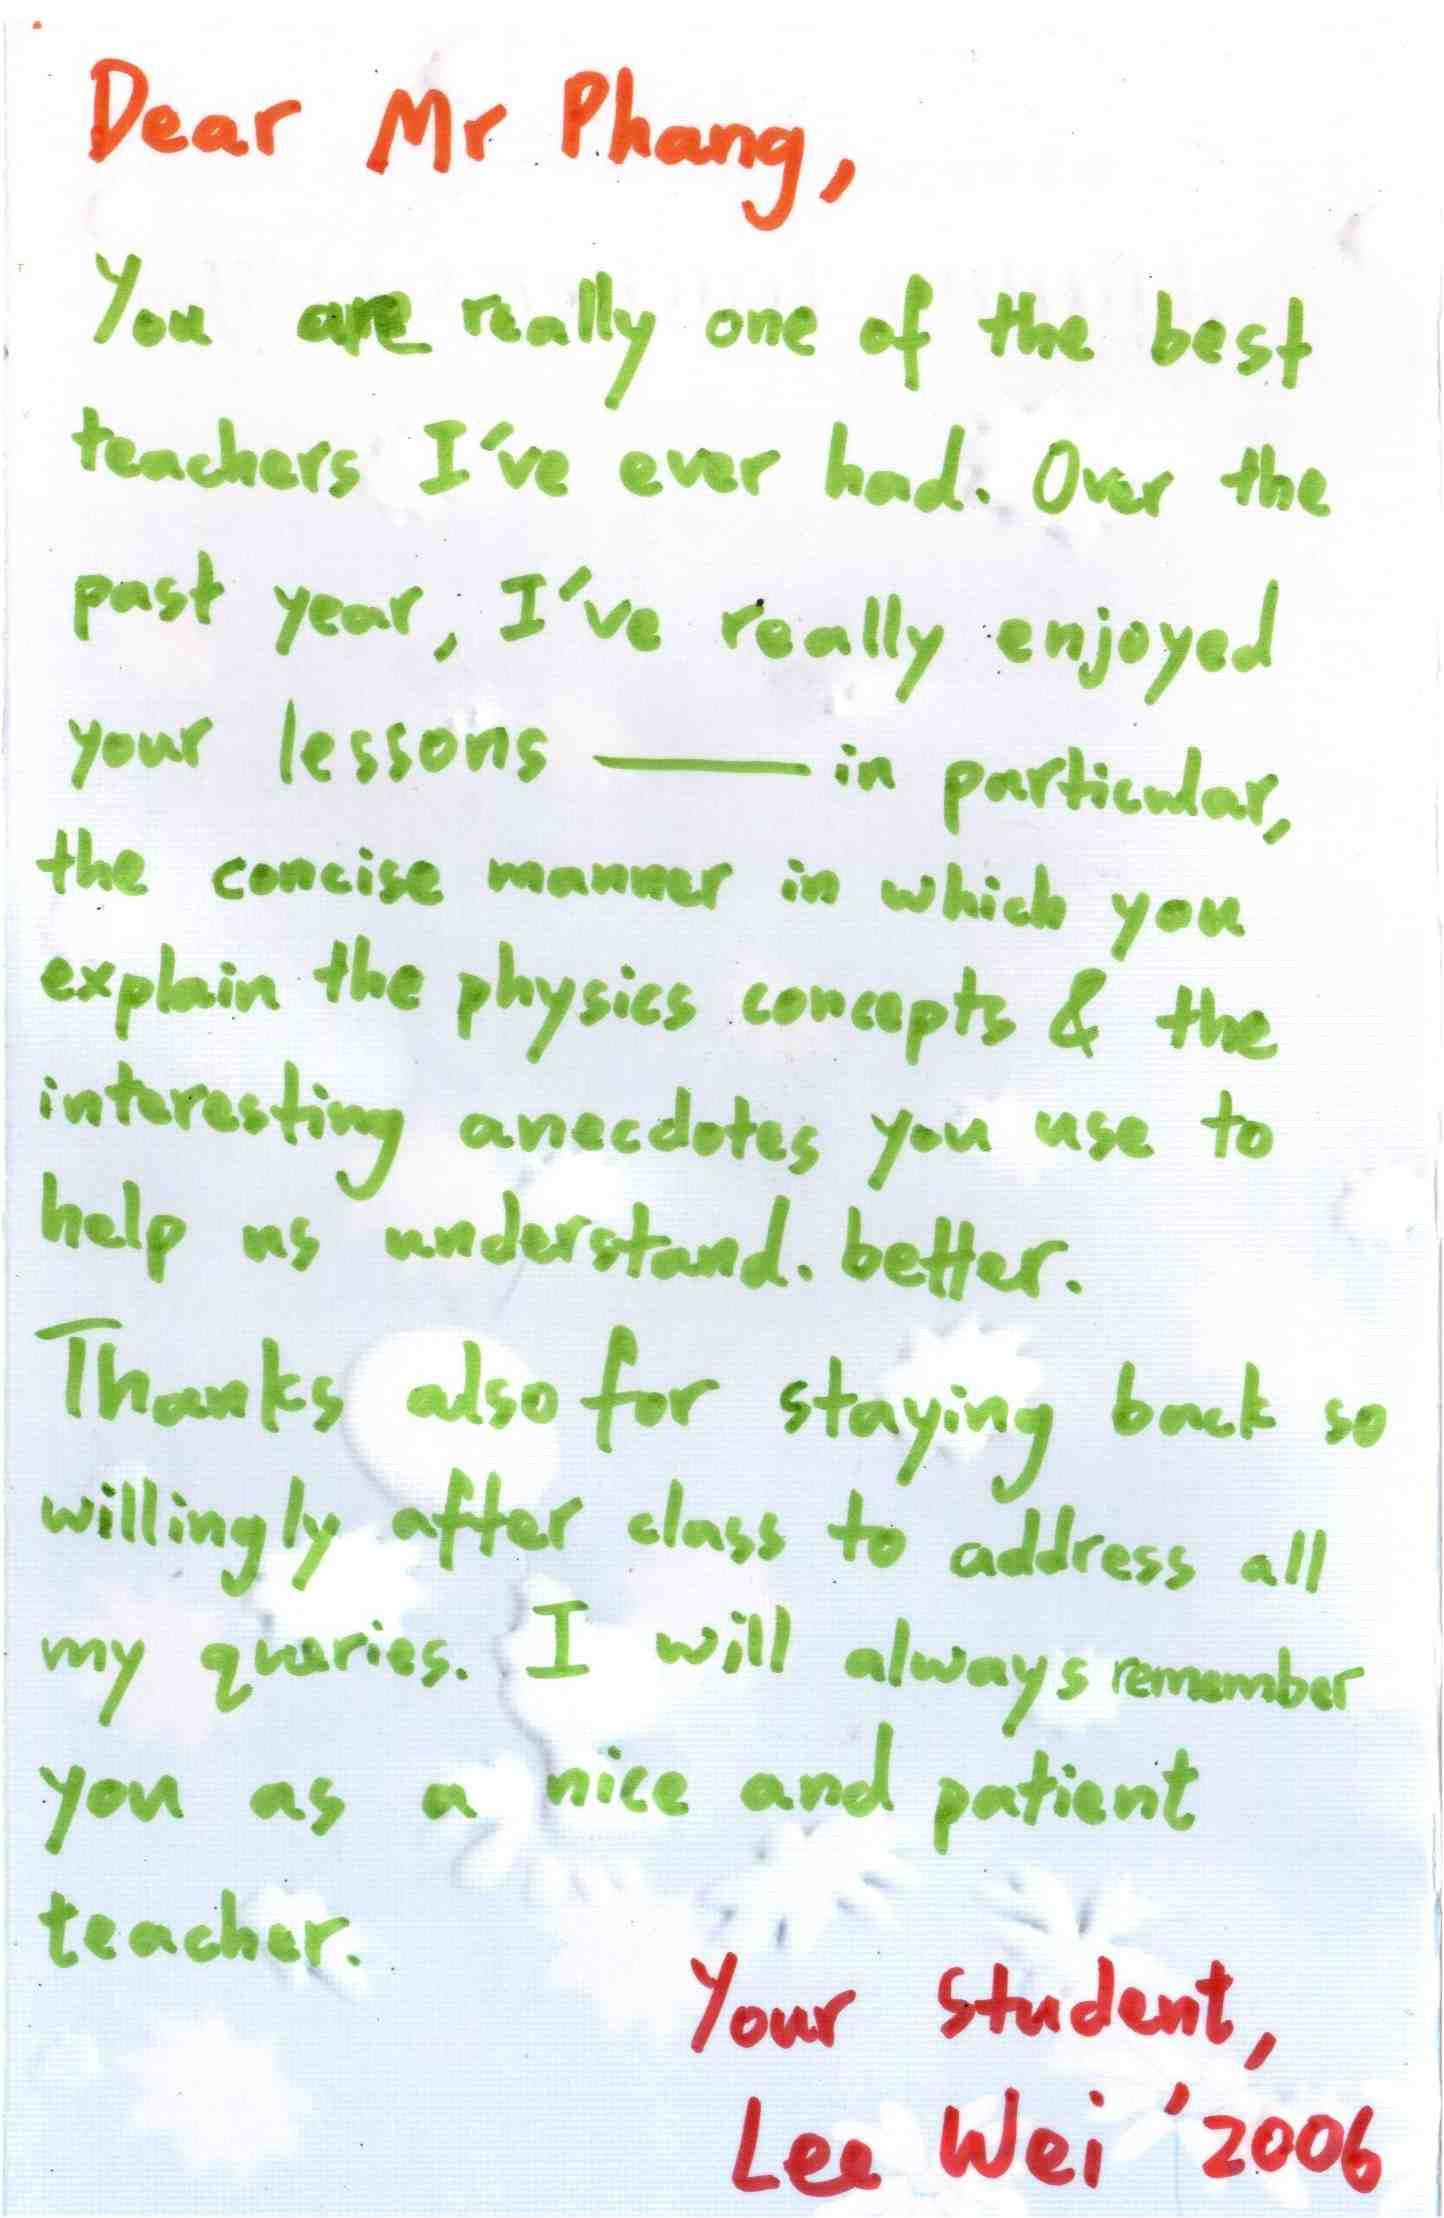 Teachers day cards 2013 love and friendship start from my teacher teachers day cards 2013 love and friendship start from my teacher good morning i kristyandbryce Images